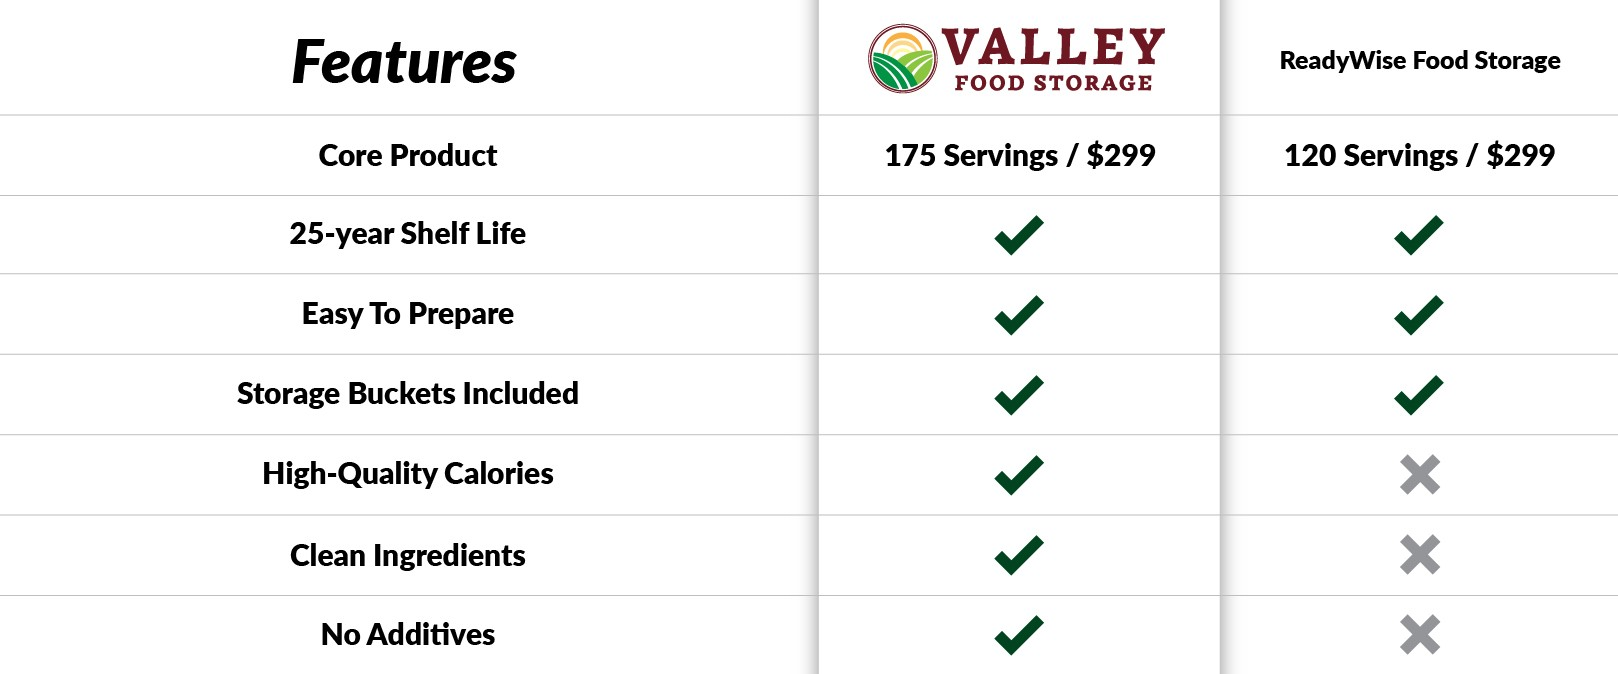 Chart comparing the features between Valley Food Storage products and Readywise Food Storage